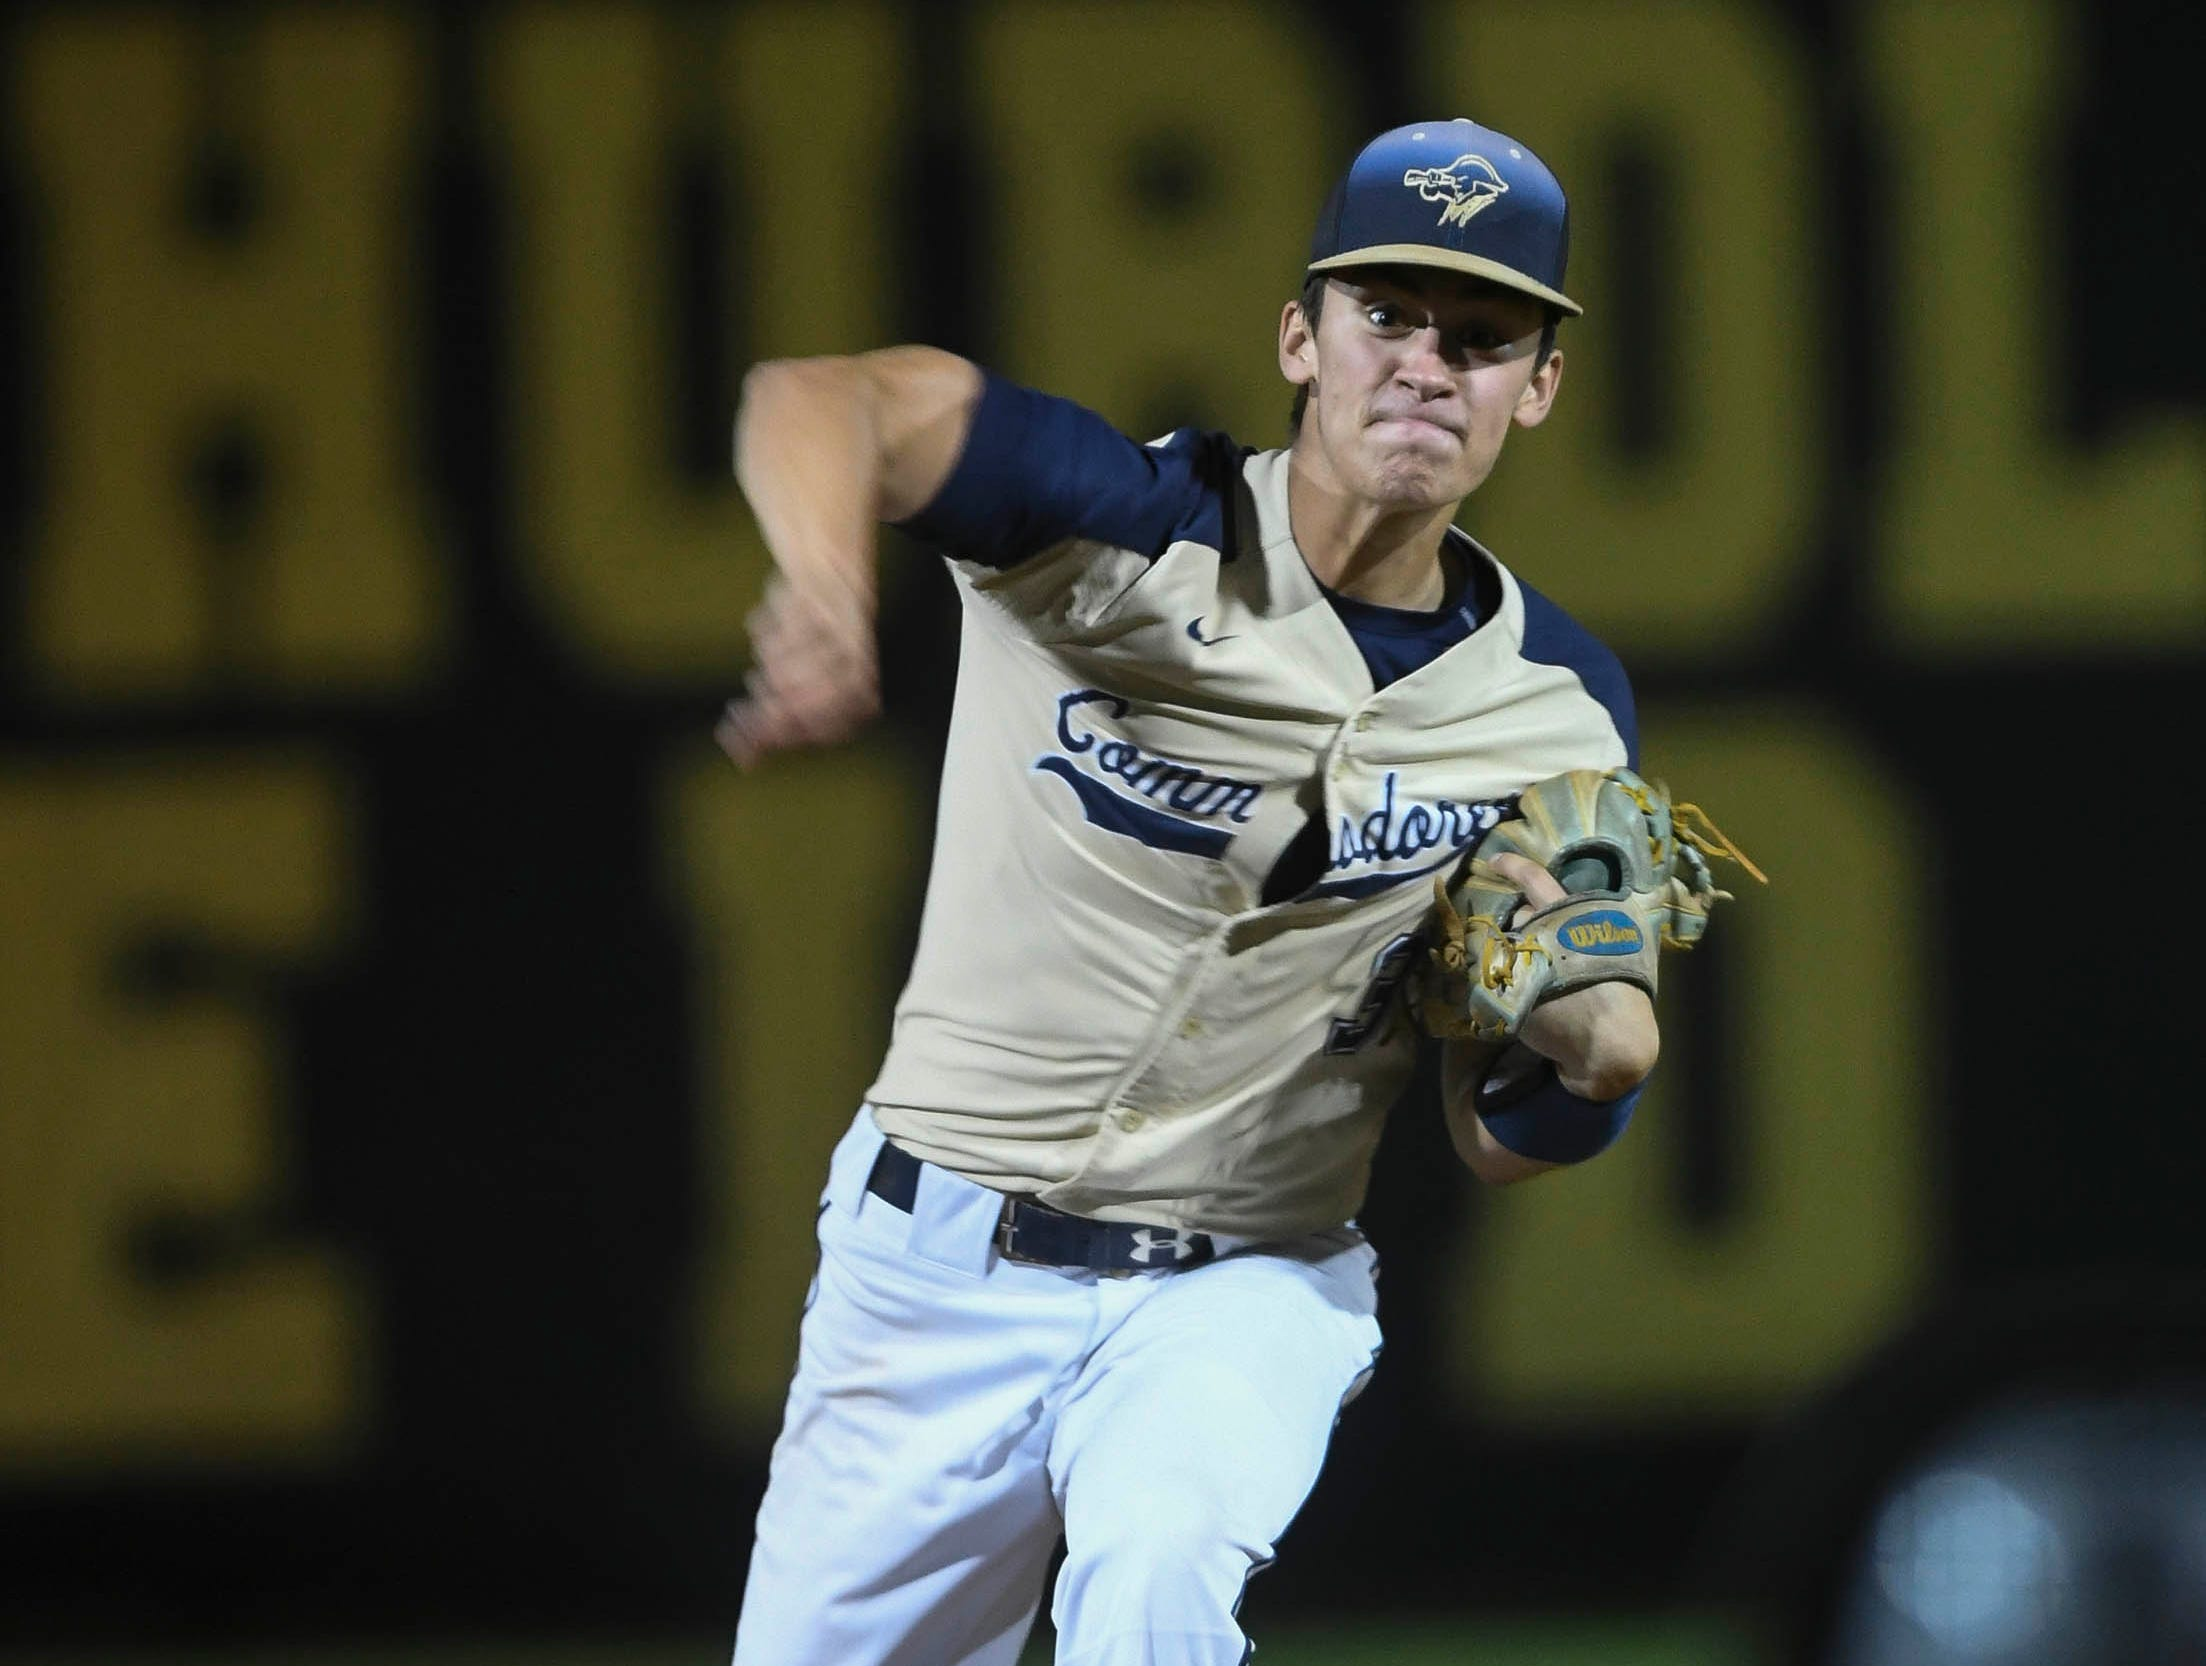 Trey Jackson of Eau Gallie pitches during Tuesday's game in Merritt Island